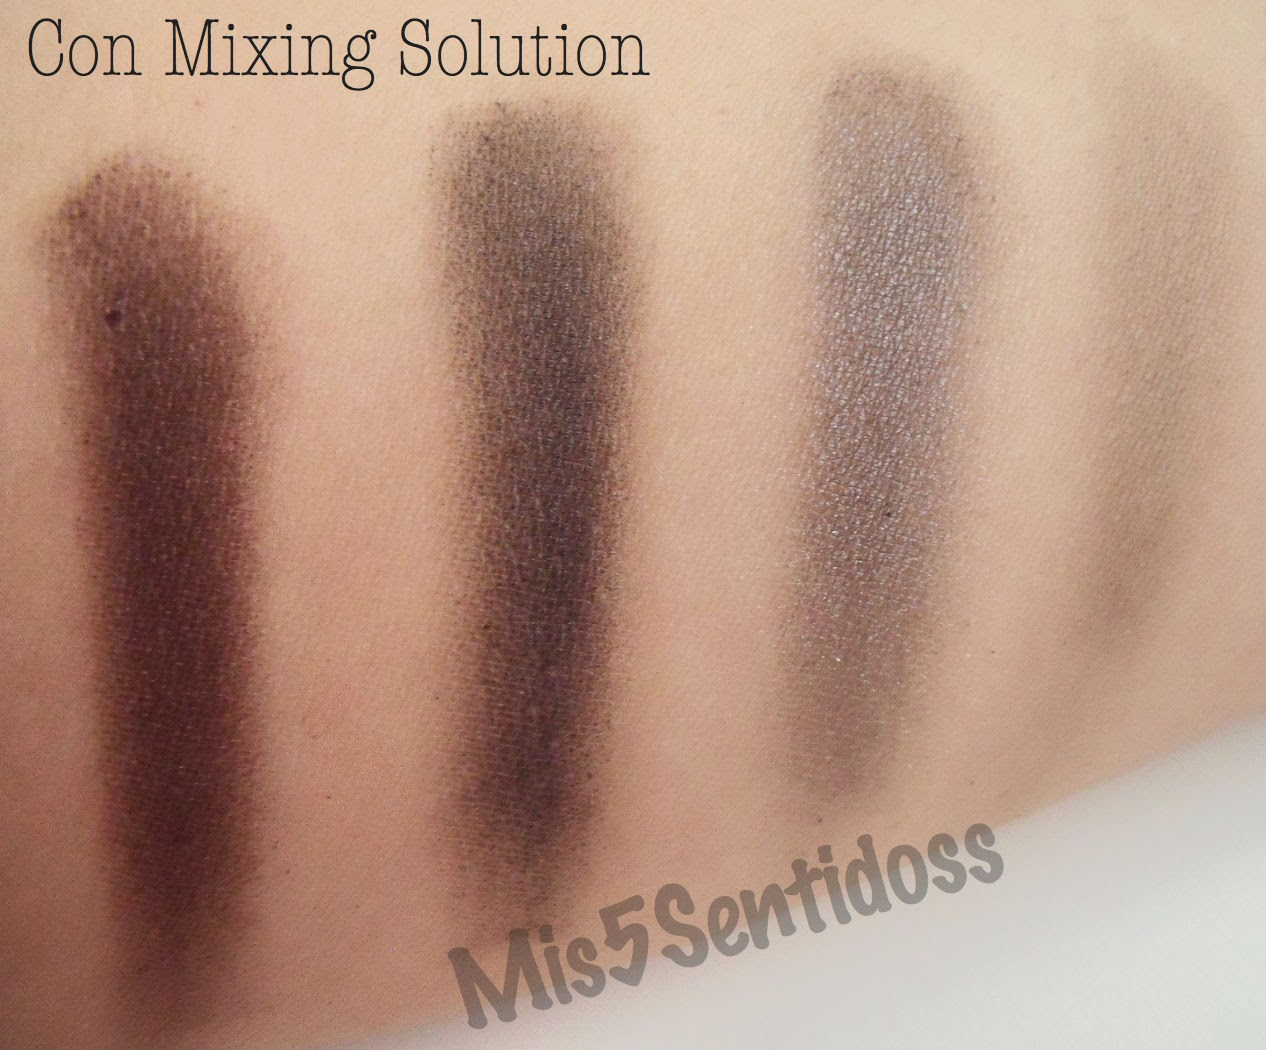 Sombras Kiko y mixing solution